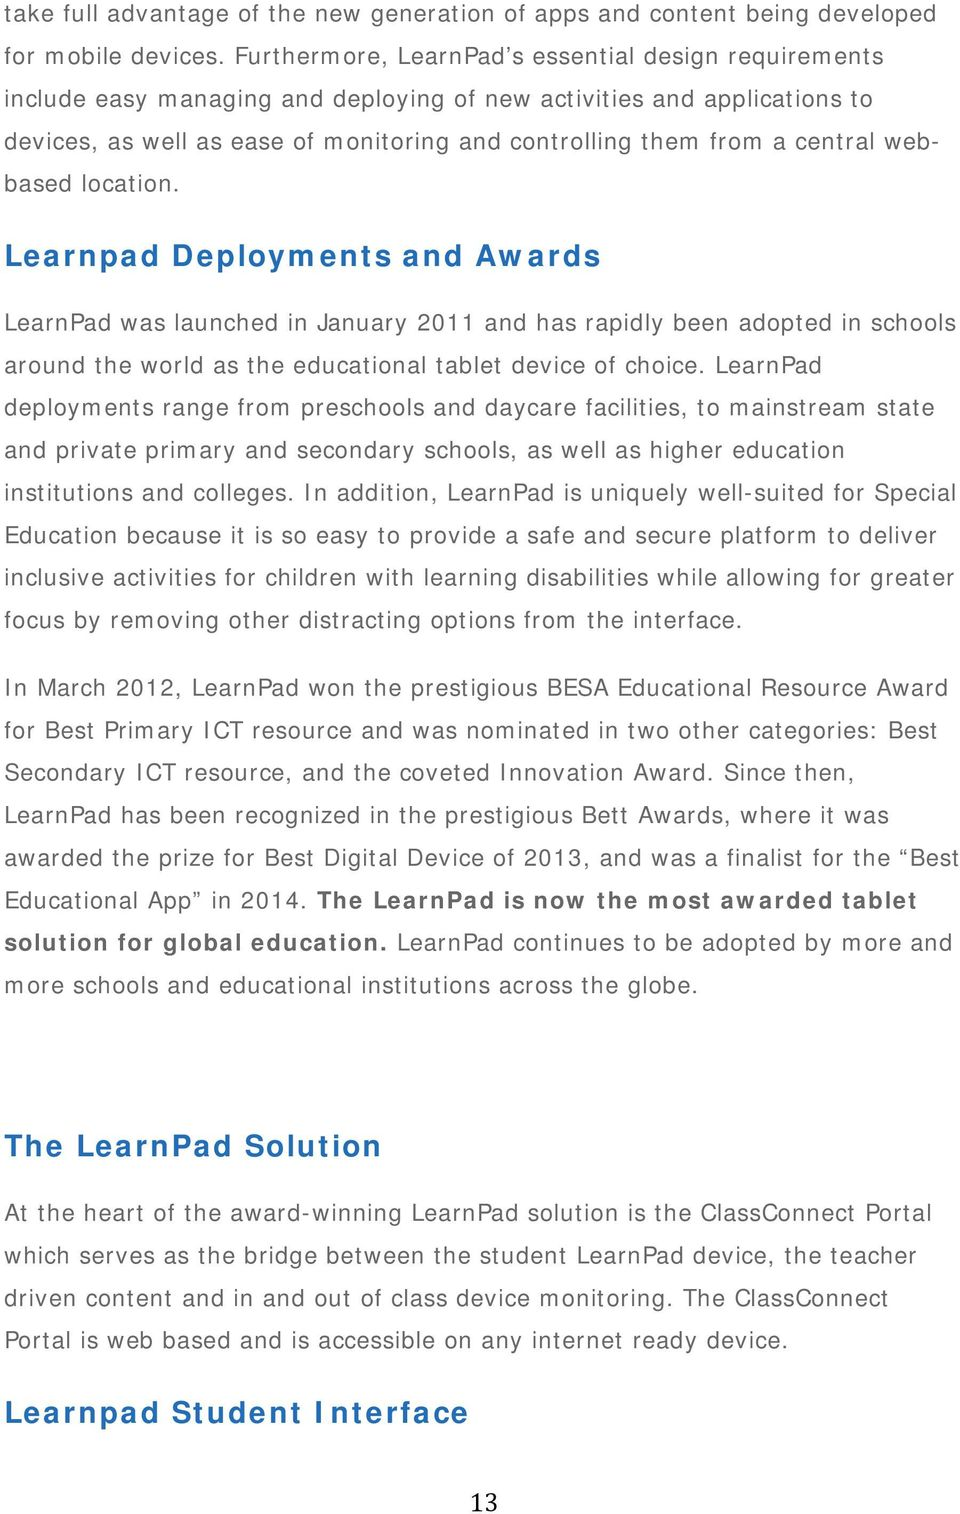 central webbased location. Learnpad Deployments and Awards LearnPad was launched in January 2011 and has rapidly been adopted in schools around the world as the educational tablet device of choice.